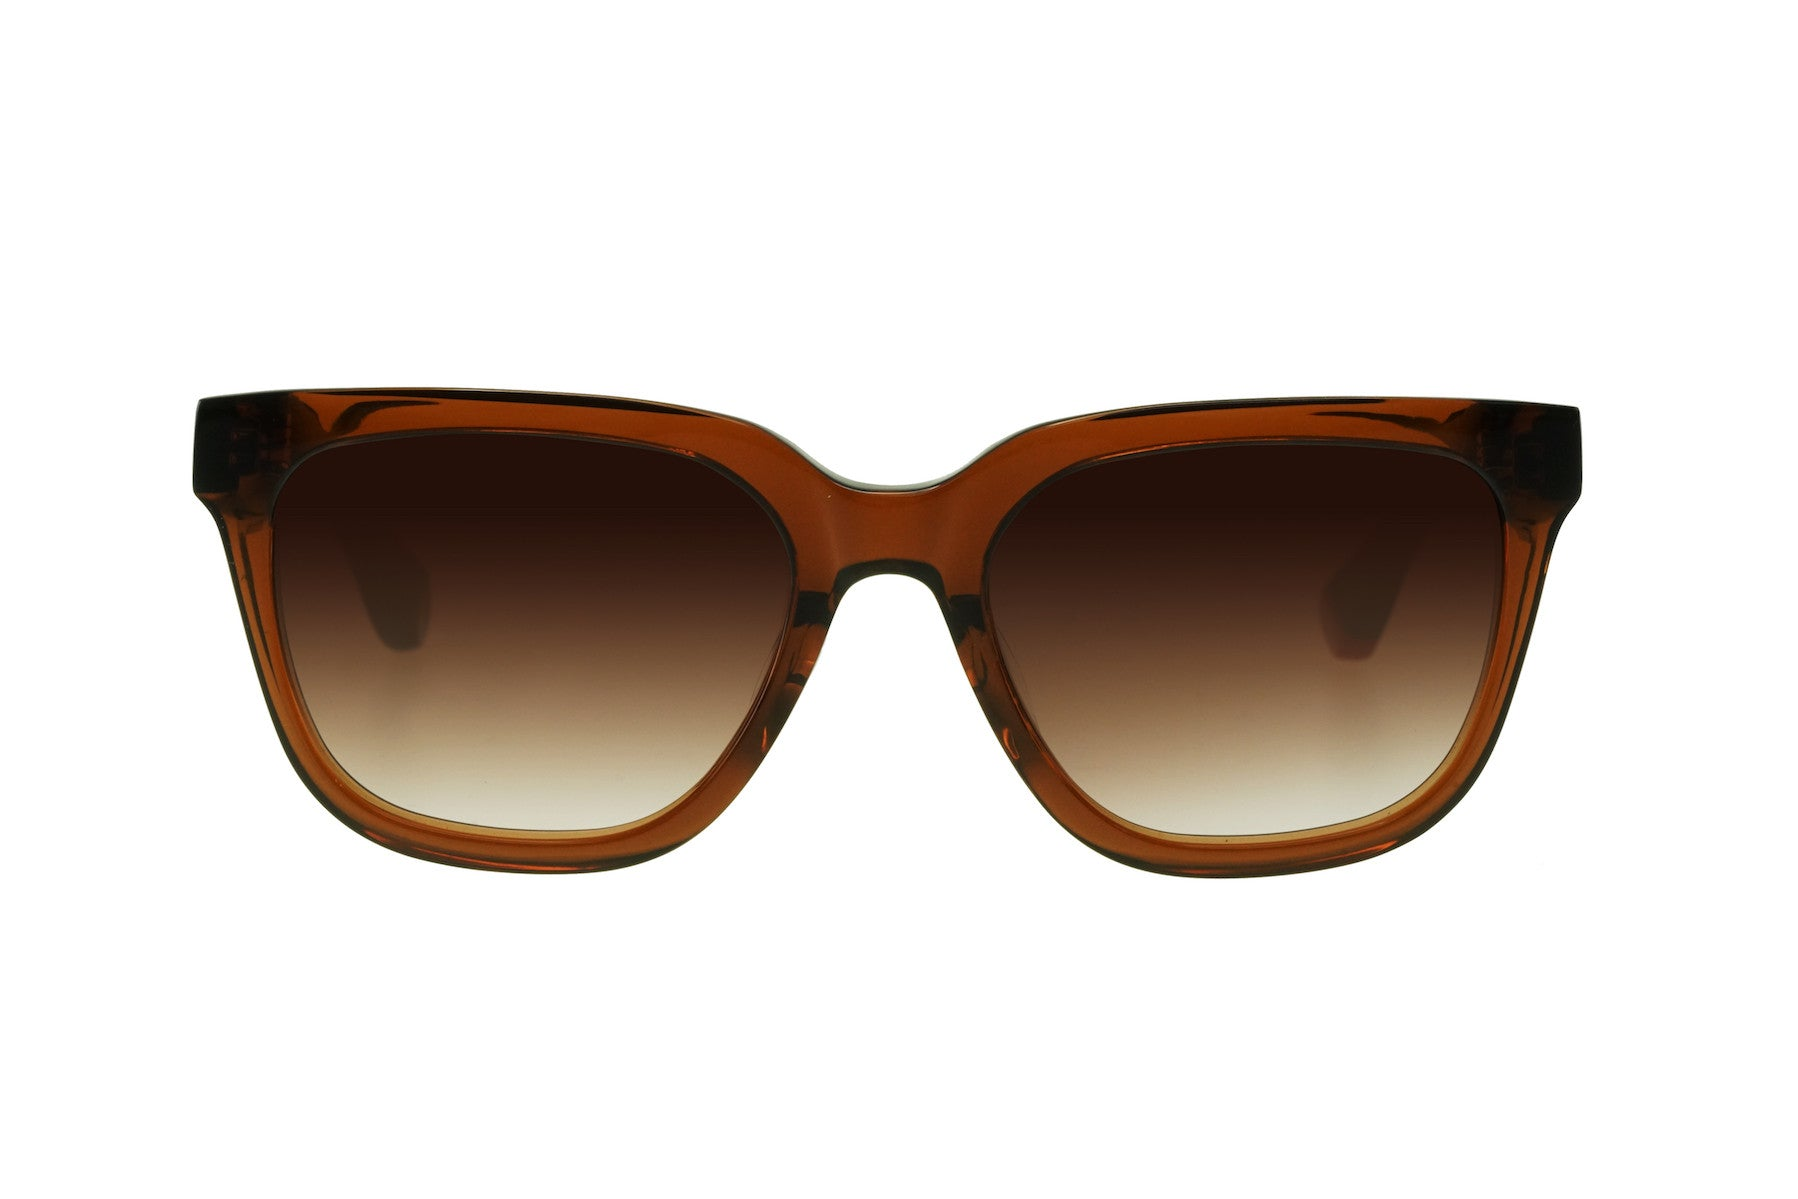 La Cienega II 726 - Peppertint - Designer sunglasses